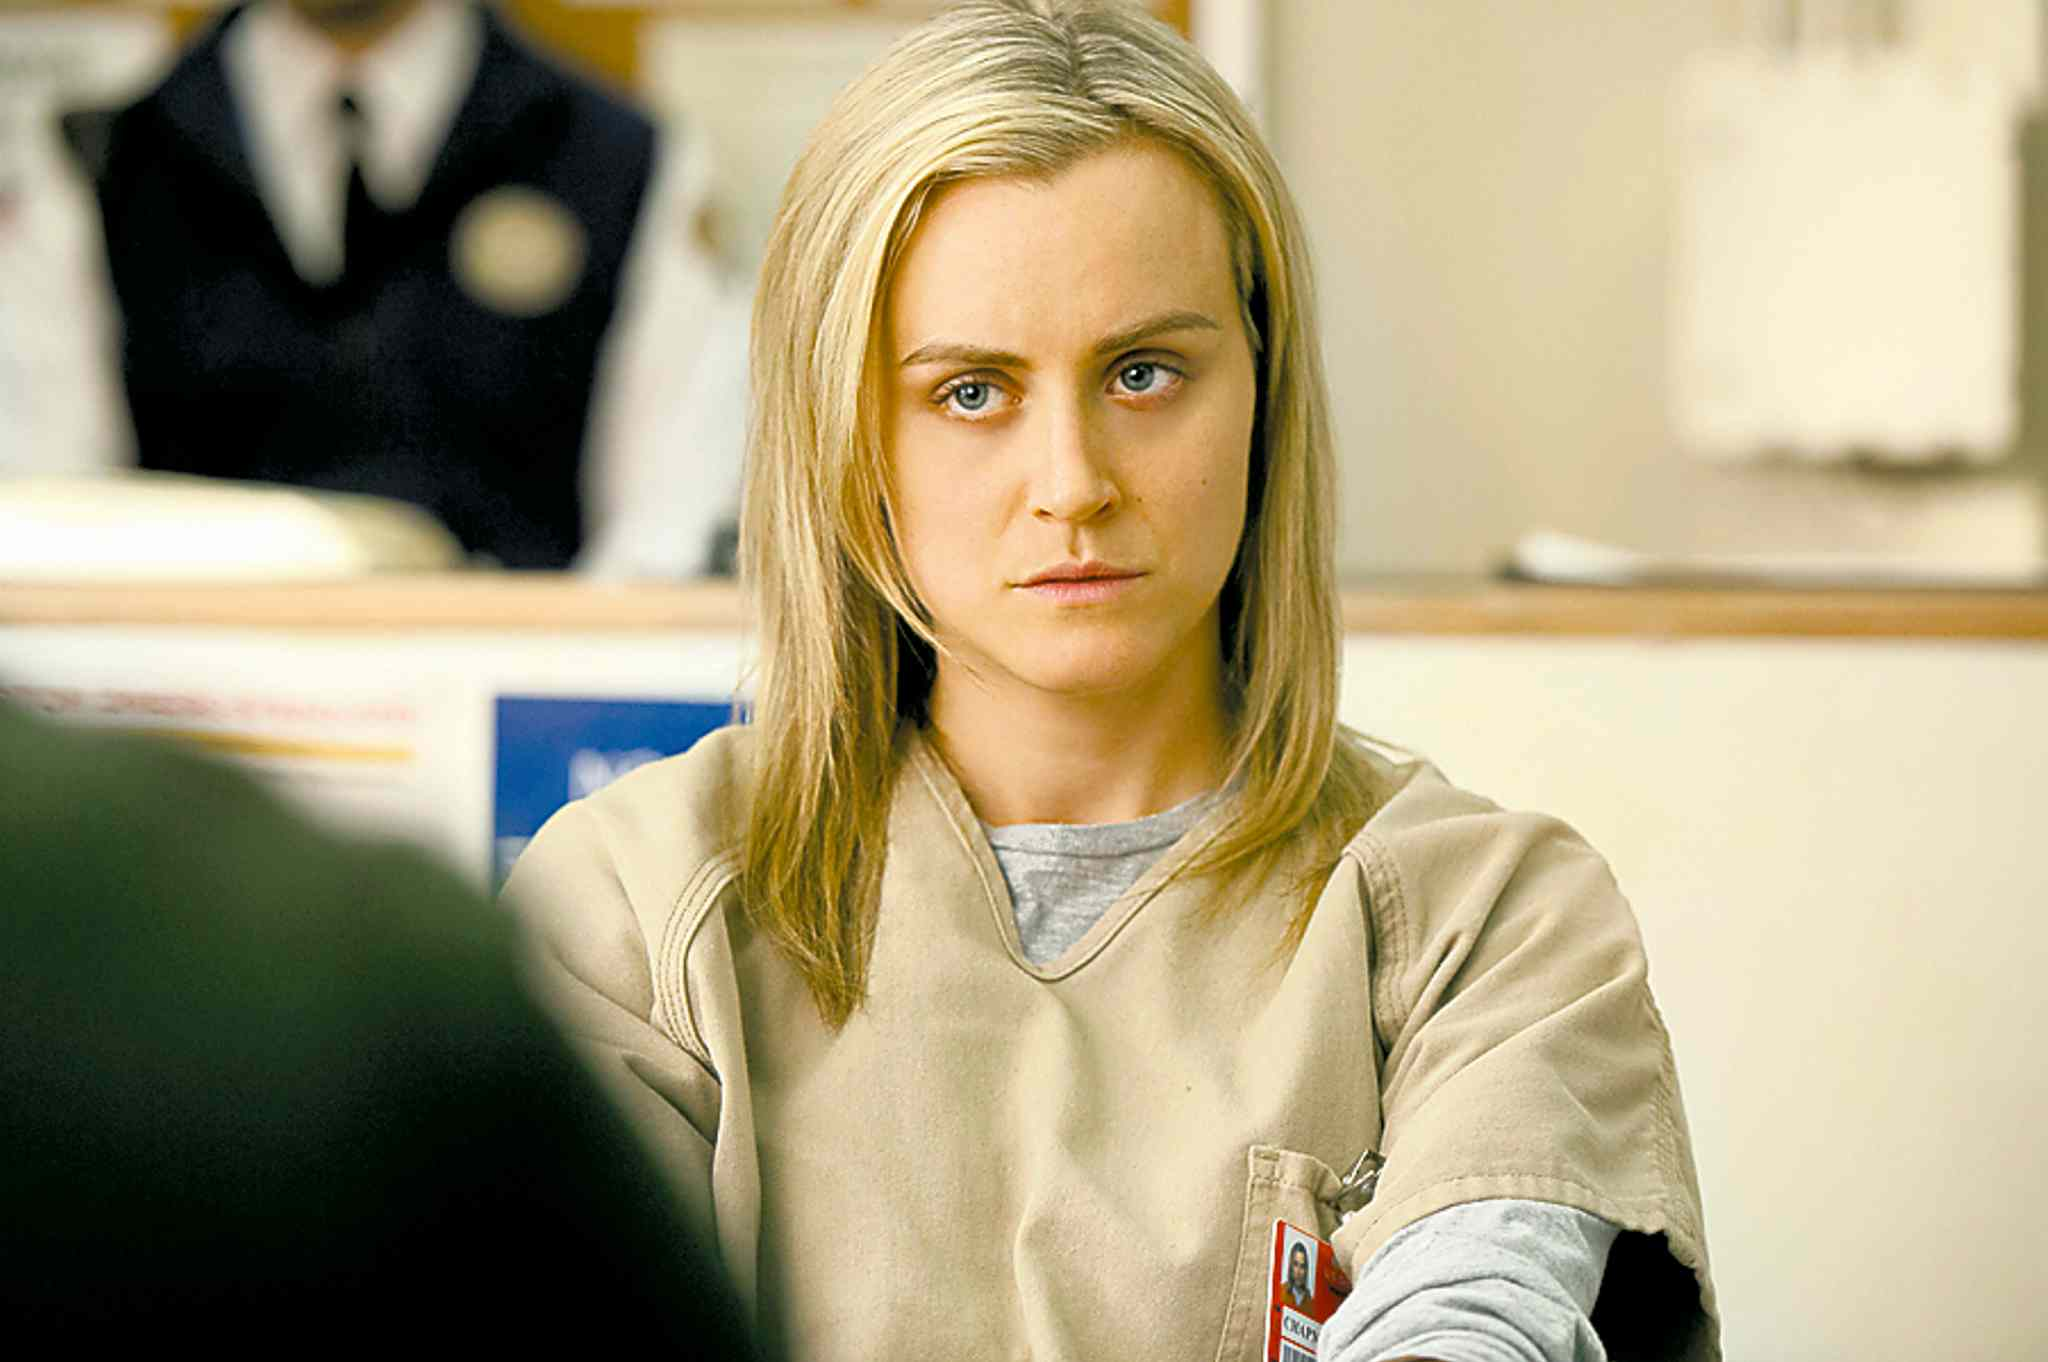 Taylor Schilling stars in Orange is the New Black on Netflix;